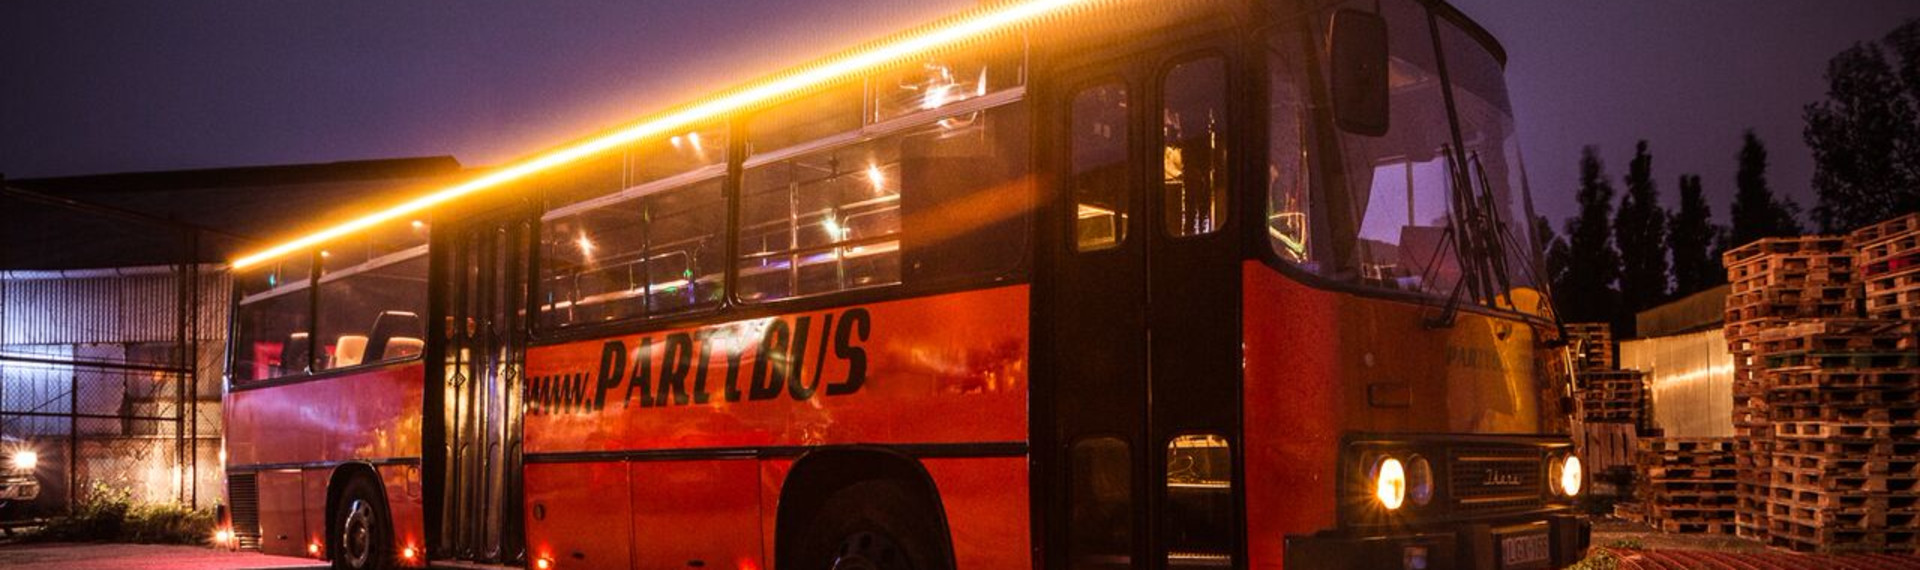 Cologne Party Bus (Max. 40 people) image